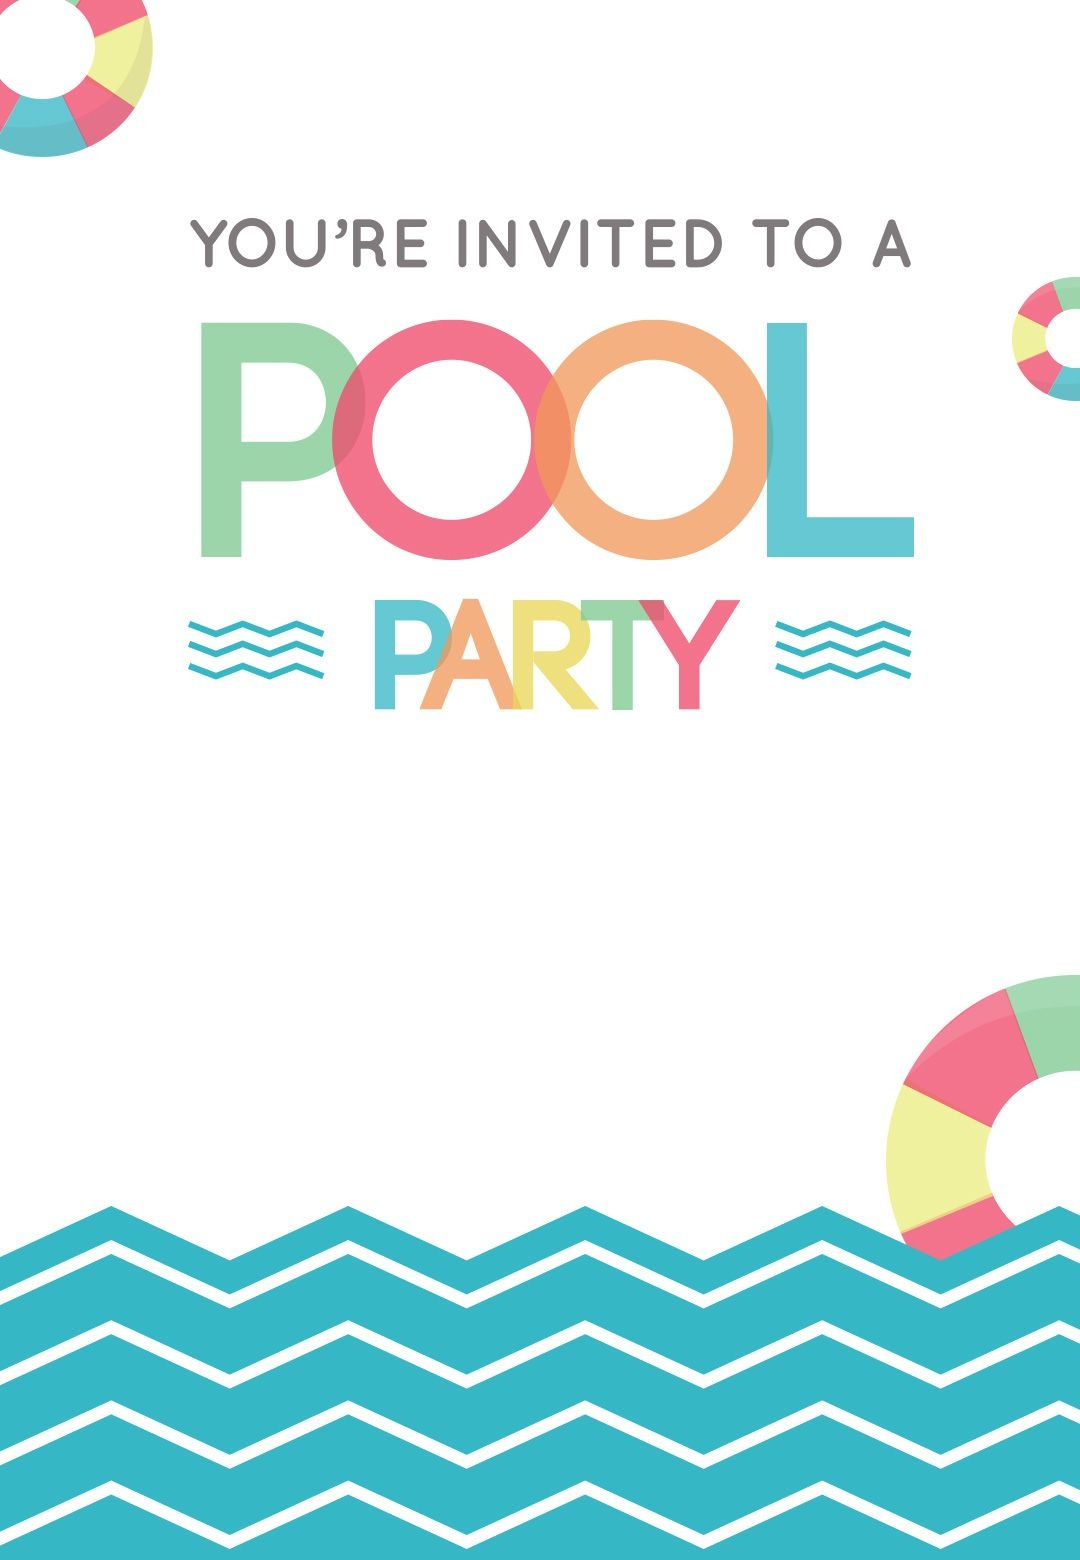 Fun Afternoon - Free Printable Summer Party Invitation Template - Free Printable Pool Party Birthday Invitations